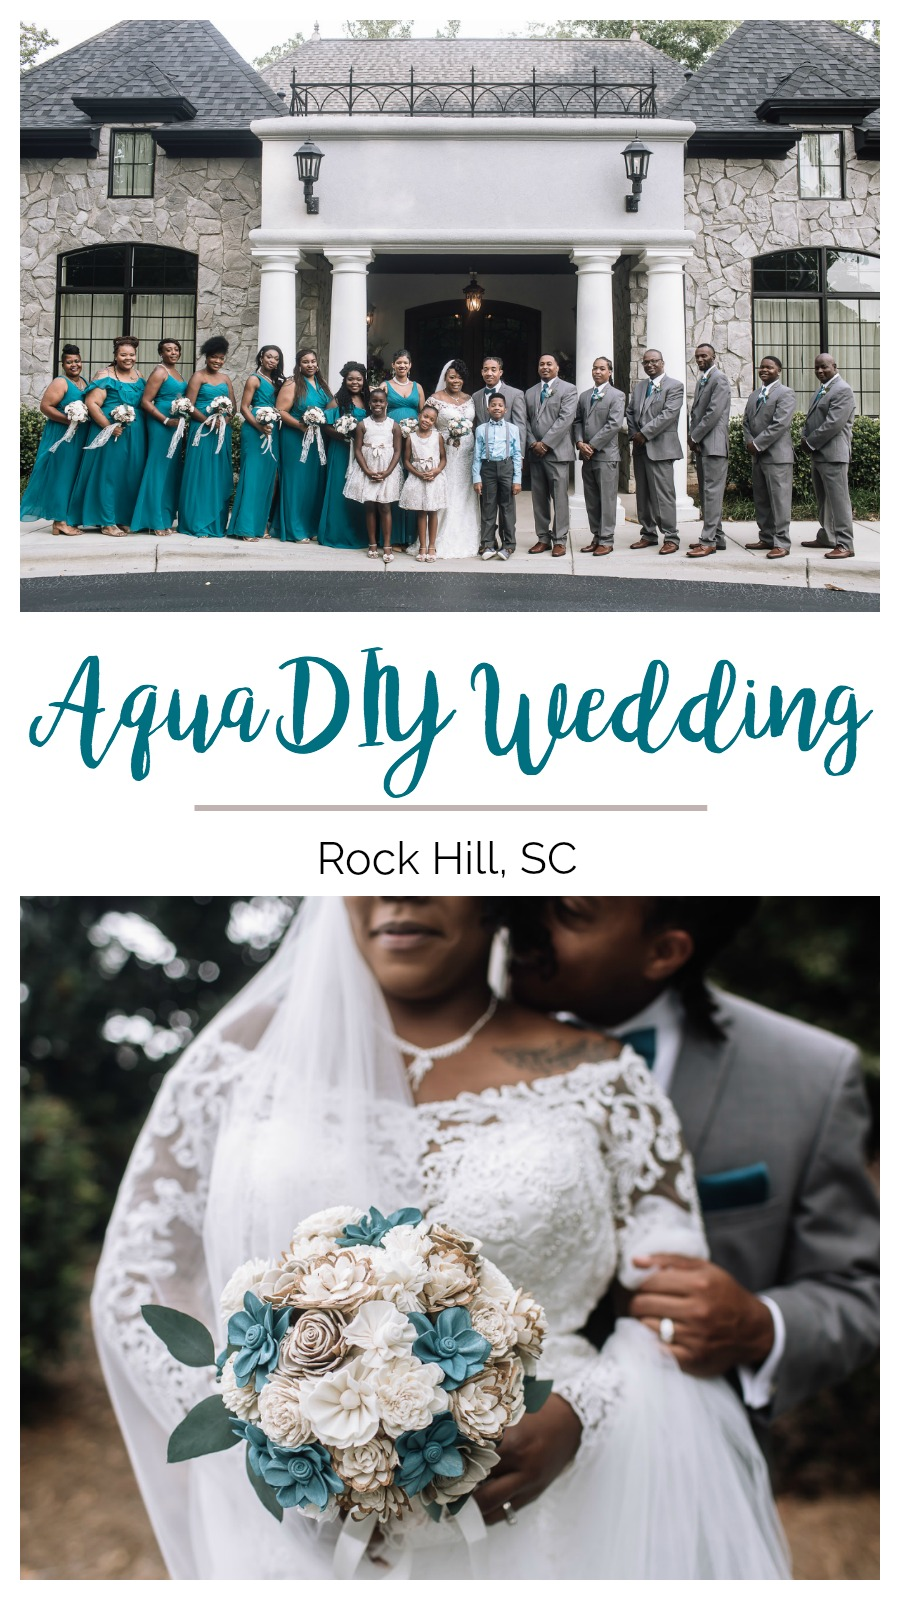 Venah and Louis: Joyous Blended Family Wedding at Breakfield at Riverwalk, Rock Hill, South Carolina | Palmetto State Weddings | Amanda Moss Photography | classic Southern wedding | aqua wedding | DIY wooden bouquet